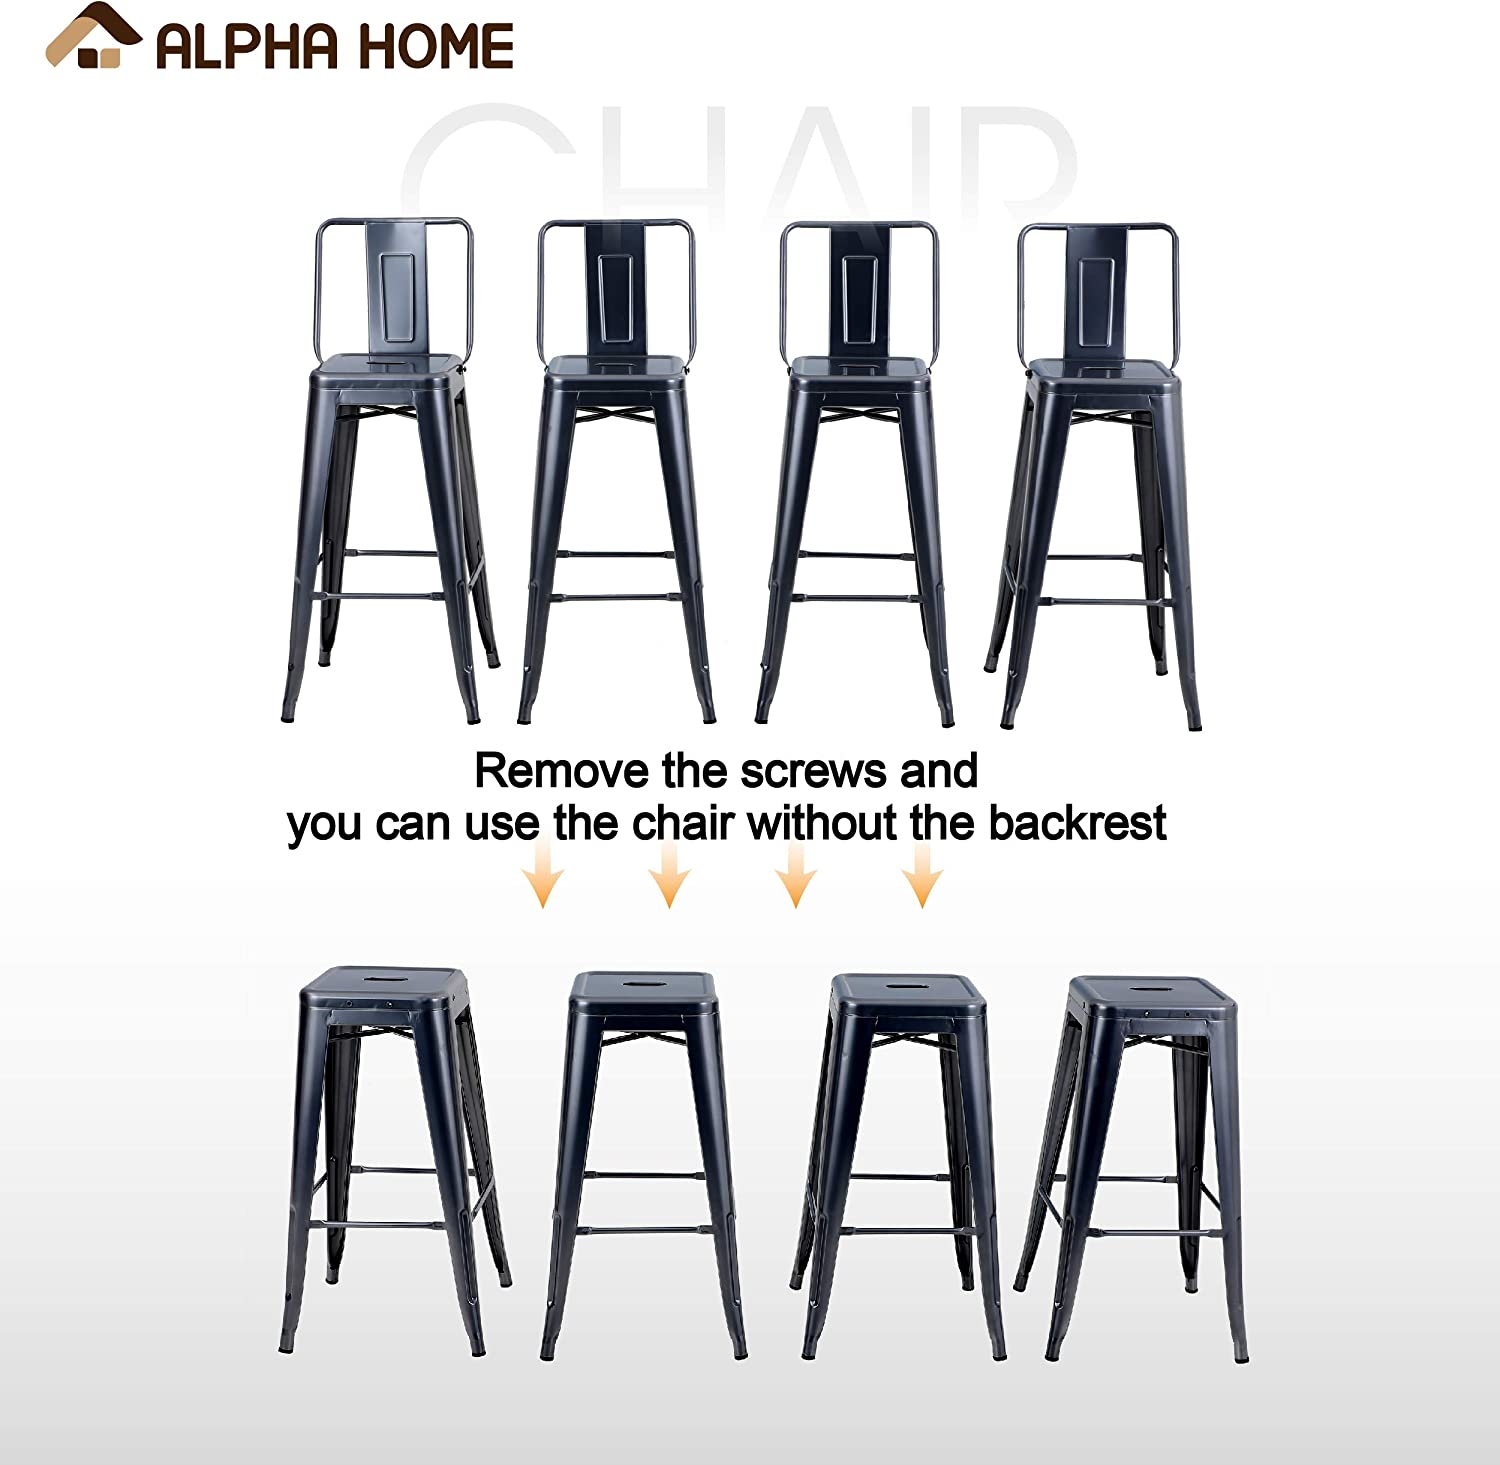 Matte Black Alpha Home Metal Bar Stool 30 Inches Counter Height Stools Set Of 4 With Low Back Bar Chair For Indoor Outdoor Kitchen Weight Capacity 350 Lb Patio Furniture Accessories Patio